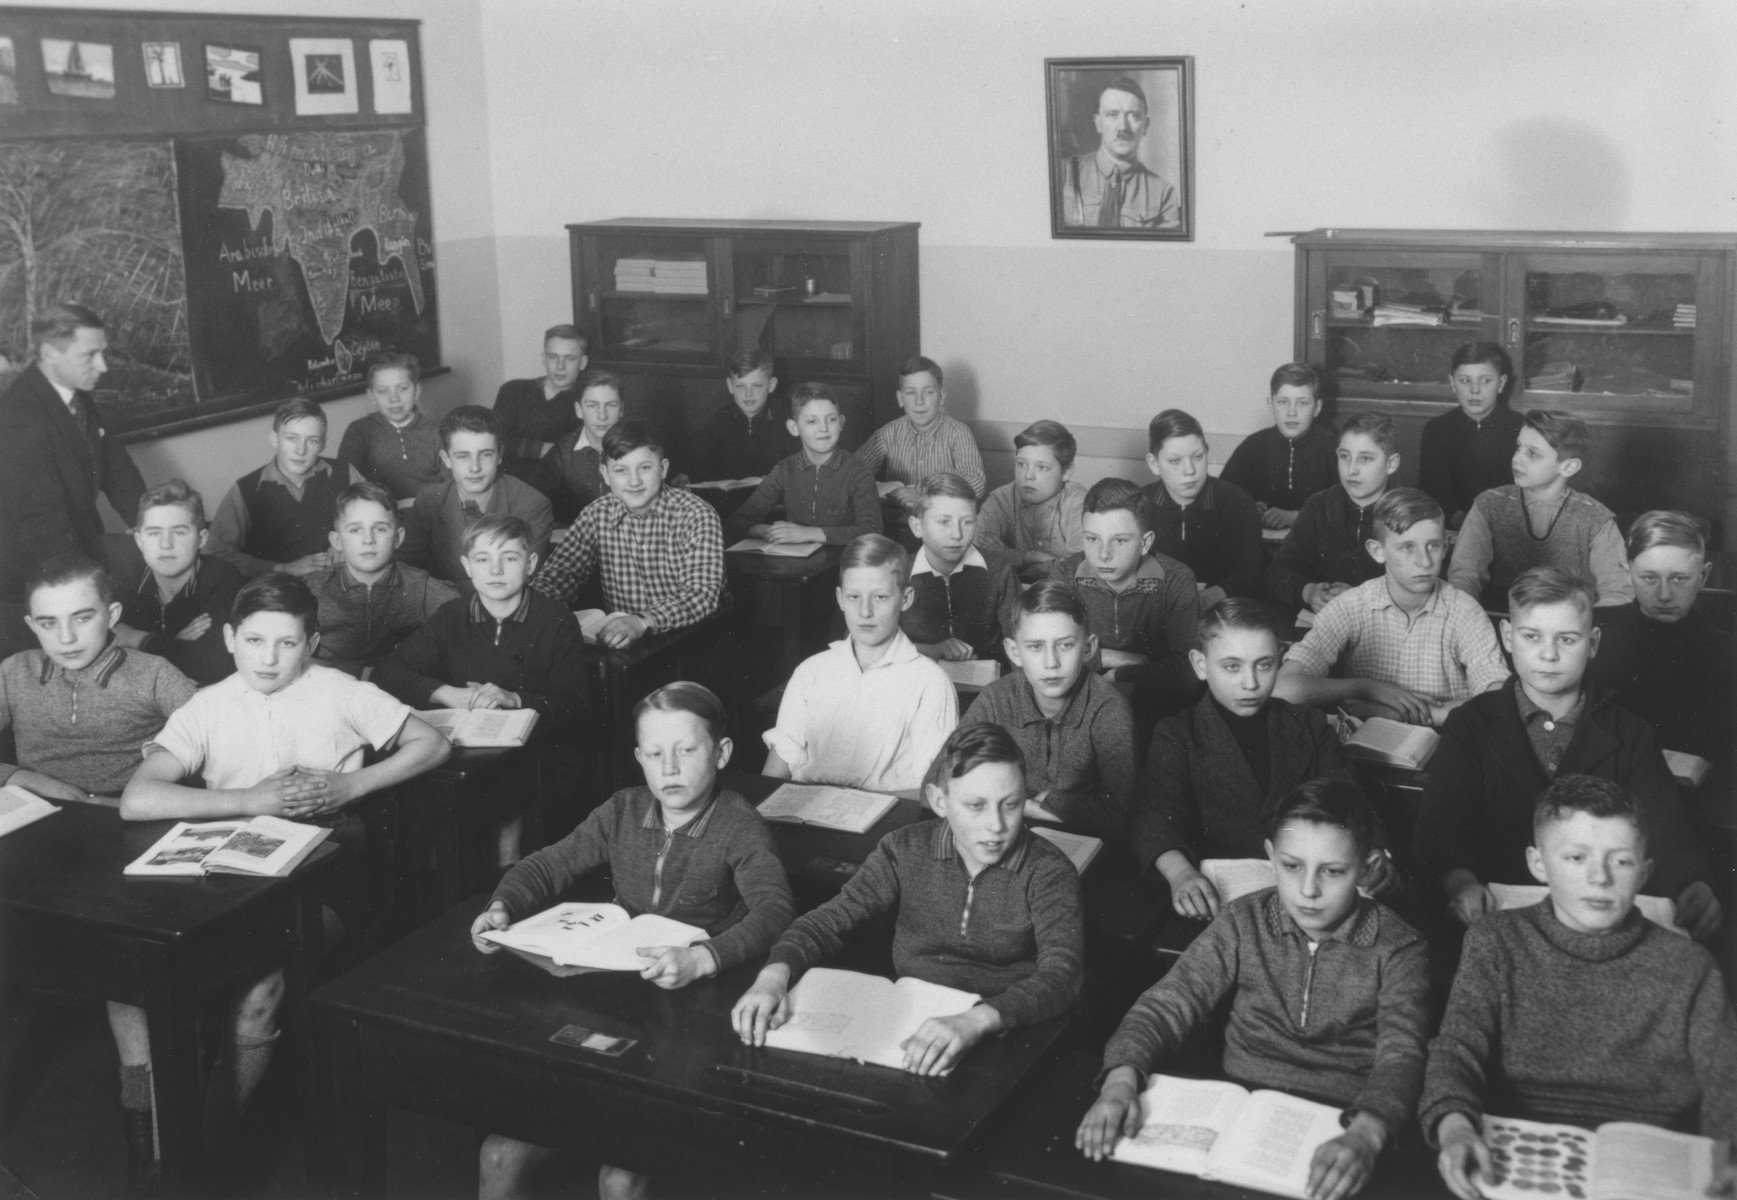 German boys attend a geography lesson in a classroom adorned with a portrait of Adolf Hitler.   One image from a photograph album belonging to a member of Police Battalion 101.